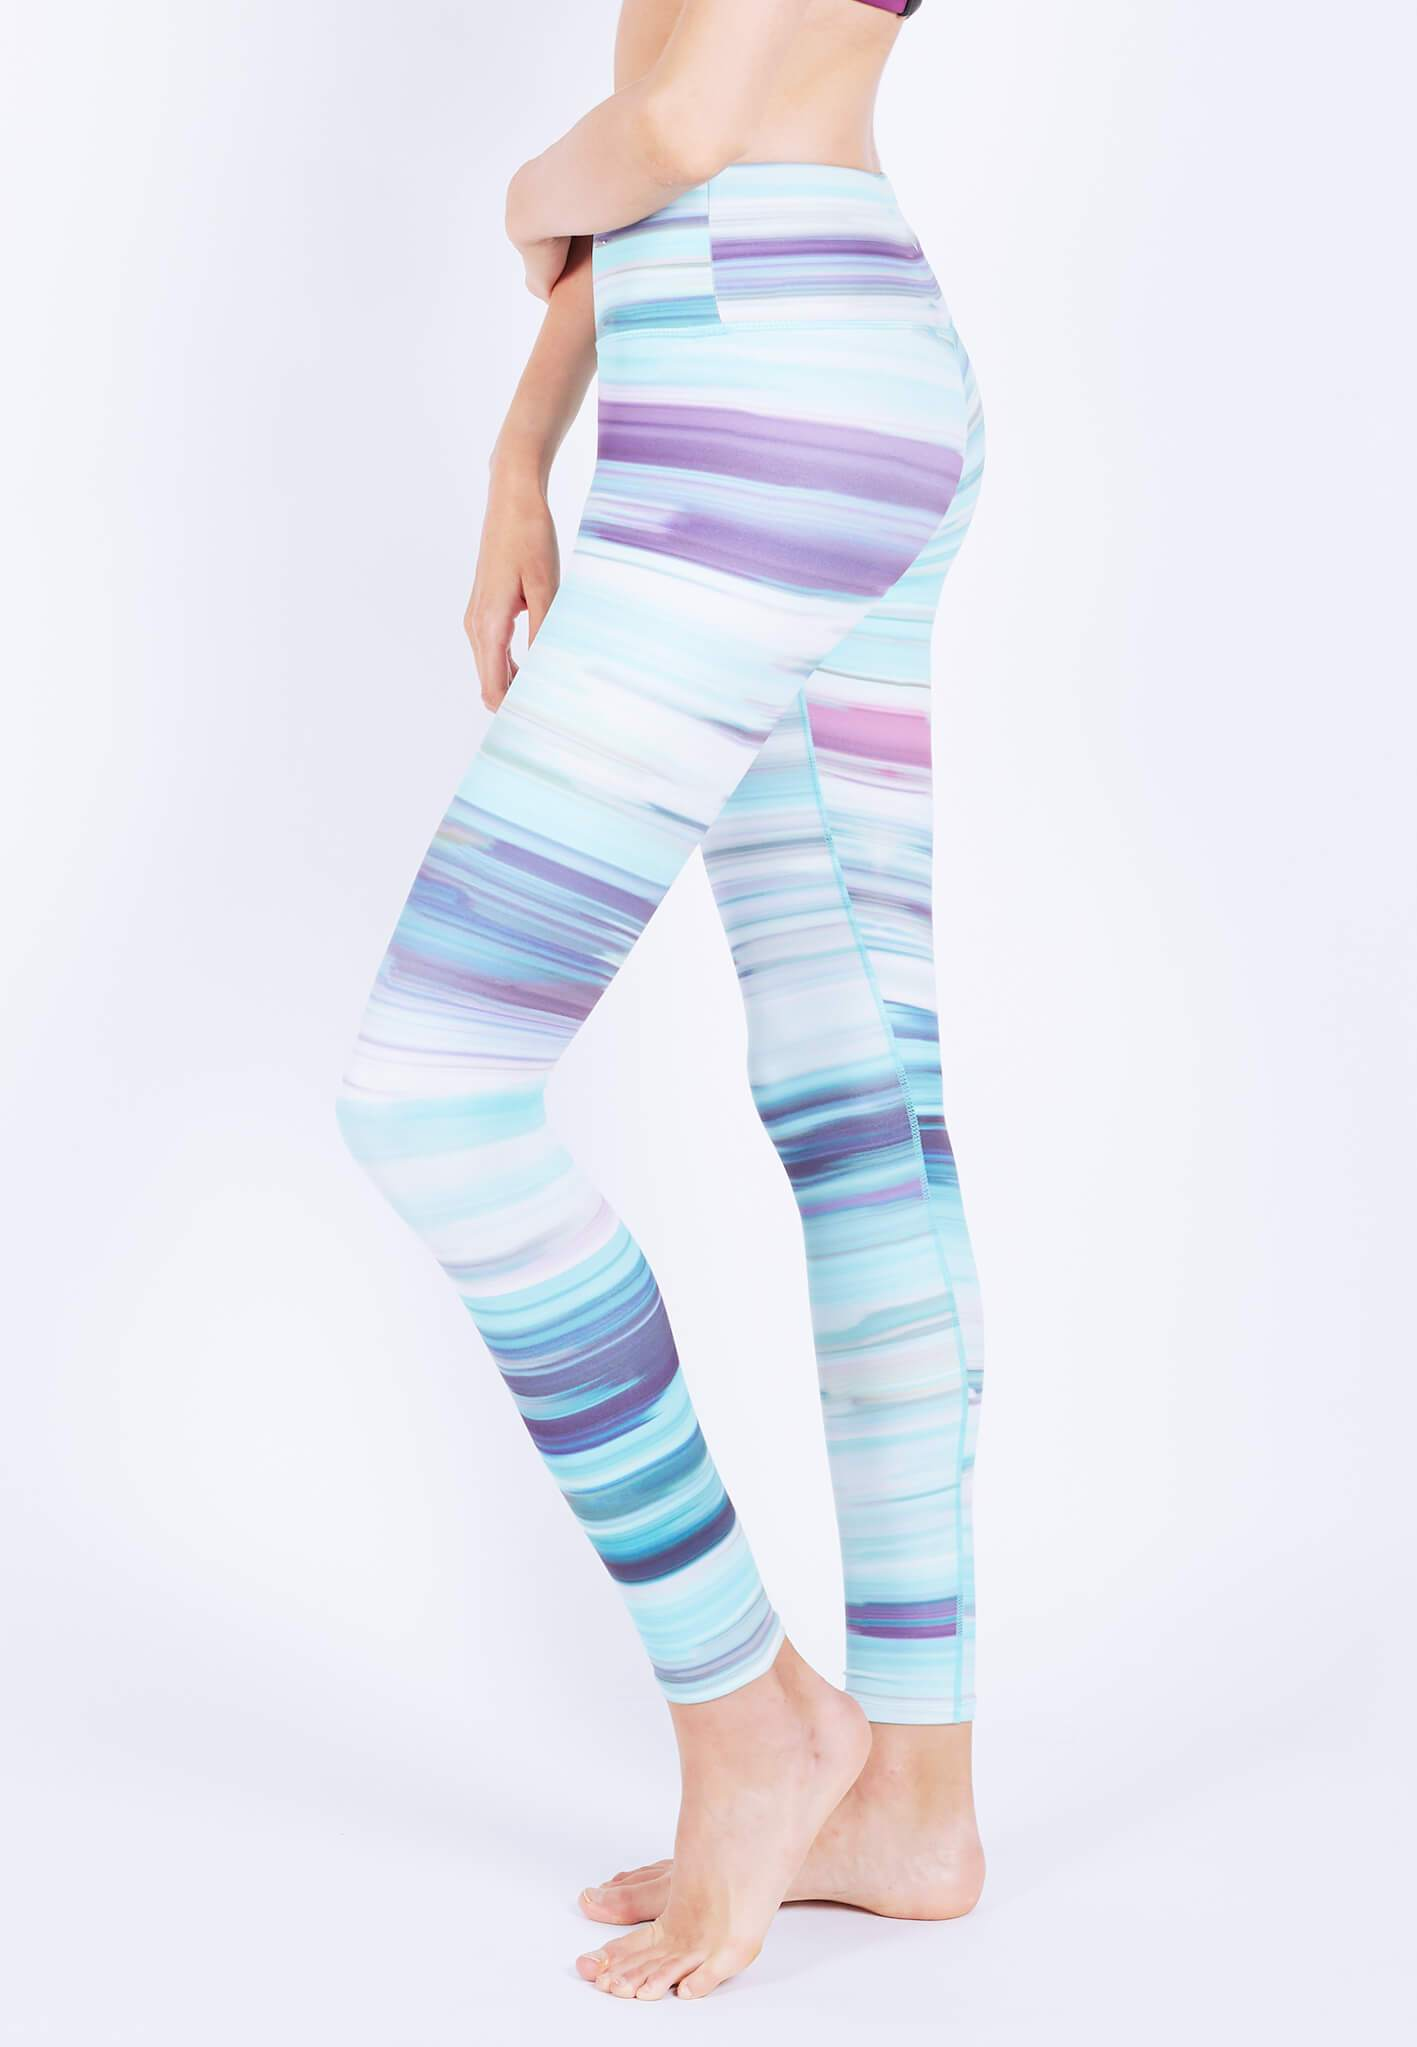 INTENSITY Leggings (with Keeperband®) in Iridescence Print (XS - 2XL) - FUNFIT